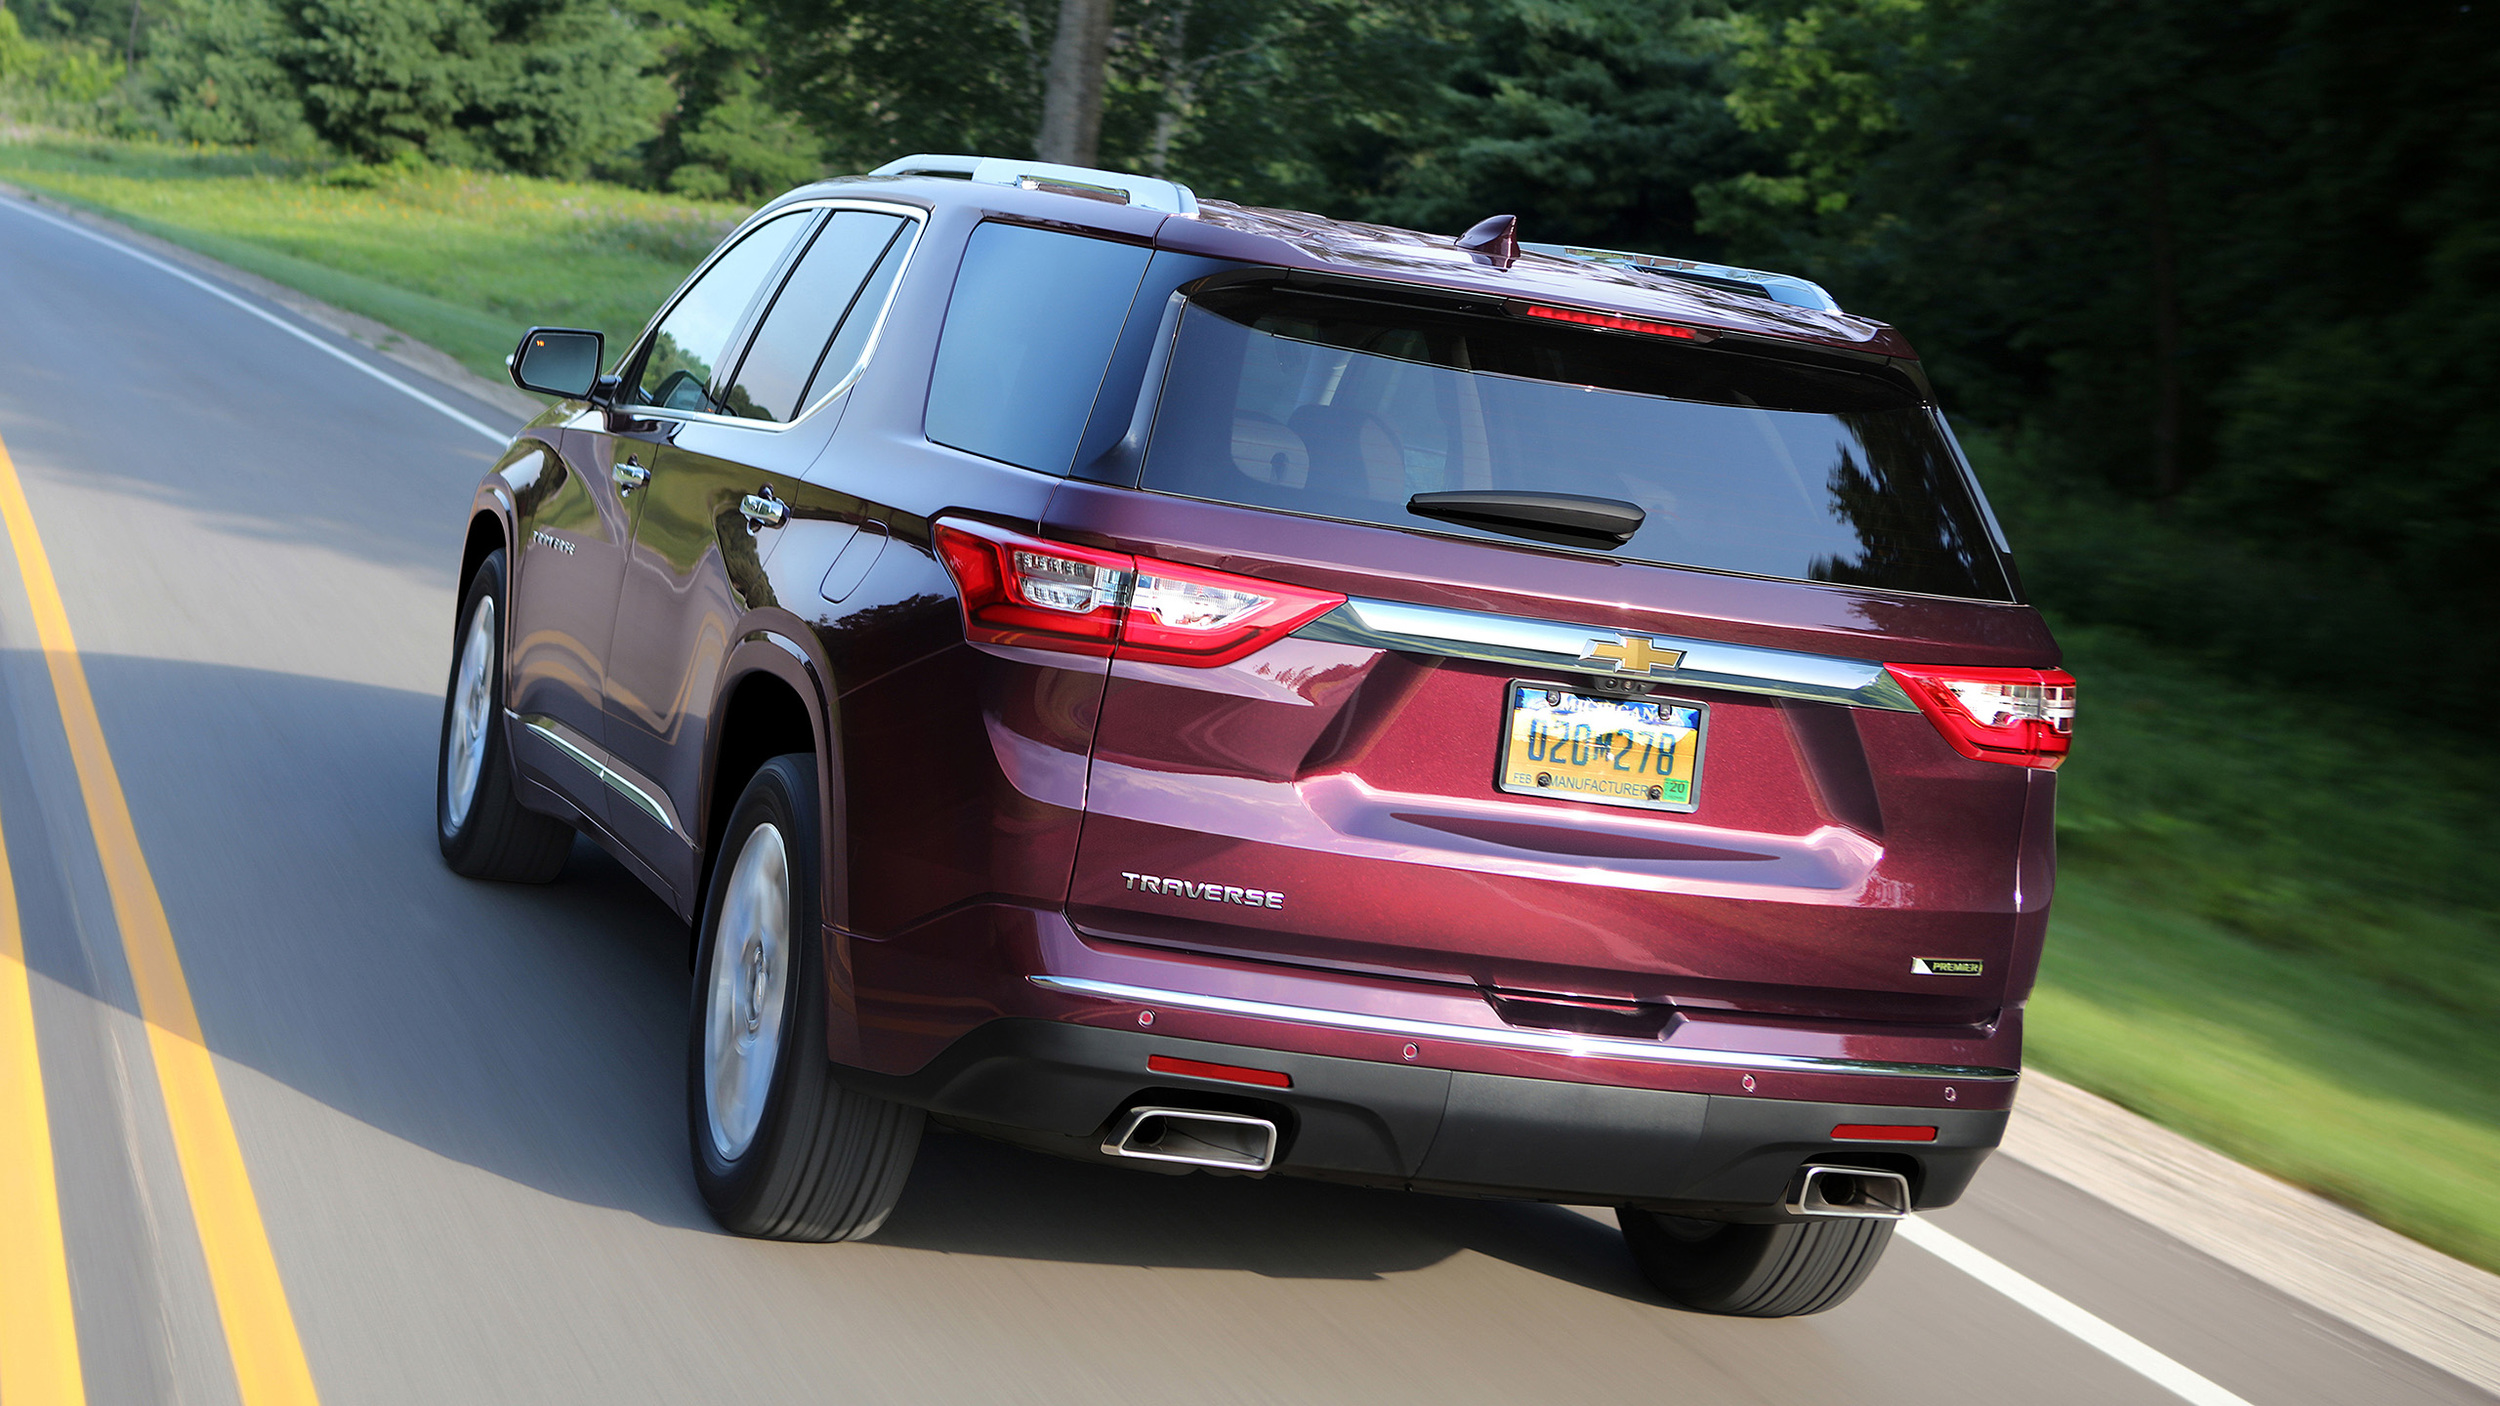 2018 Chevy Traverse First Drive | Bigger, but not the best ...